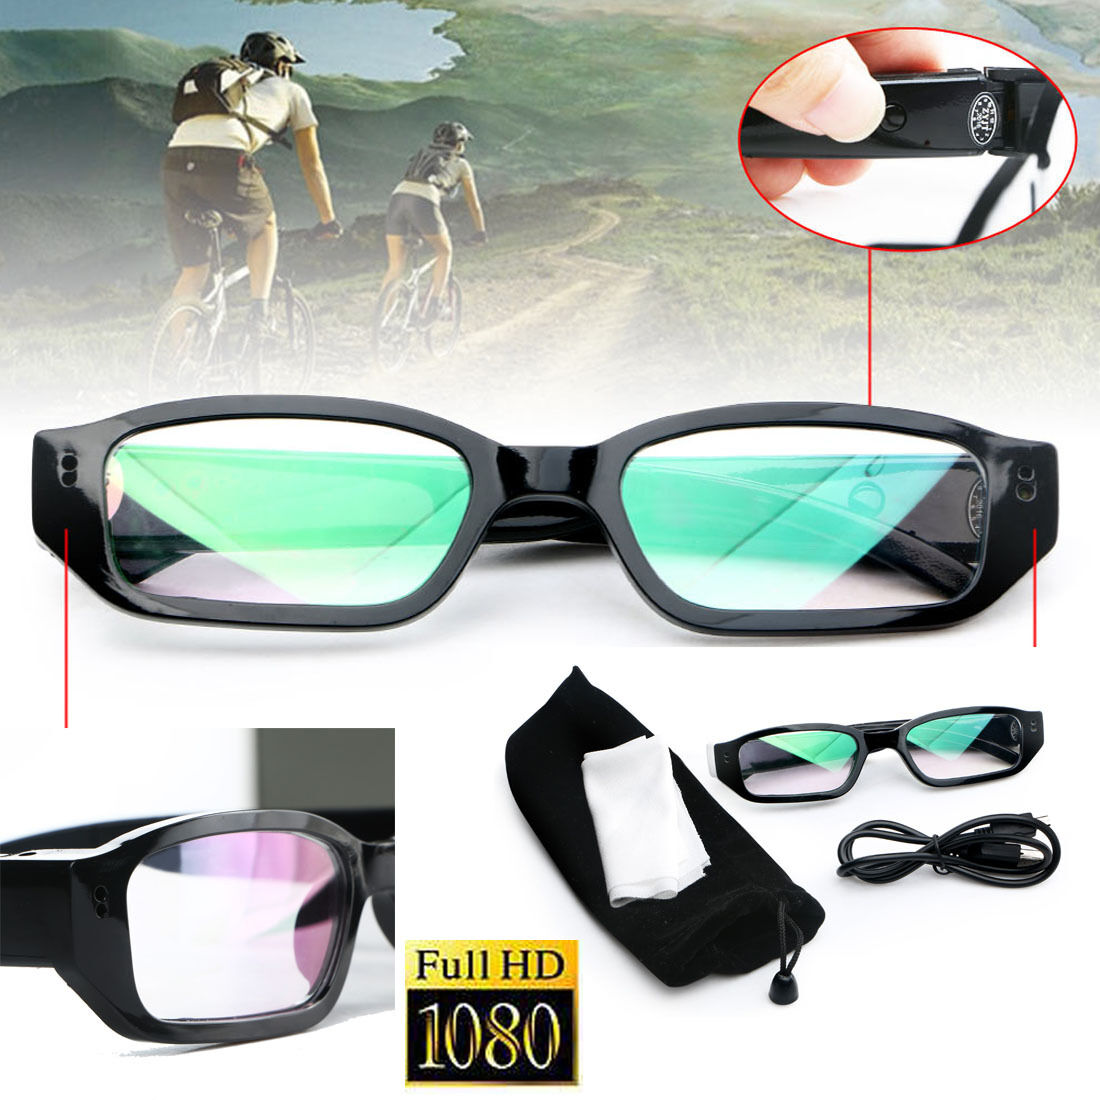 1080P HD Digital Video Camera Glasses Audio Recording DVR Eyewear Camcorder New